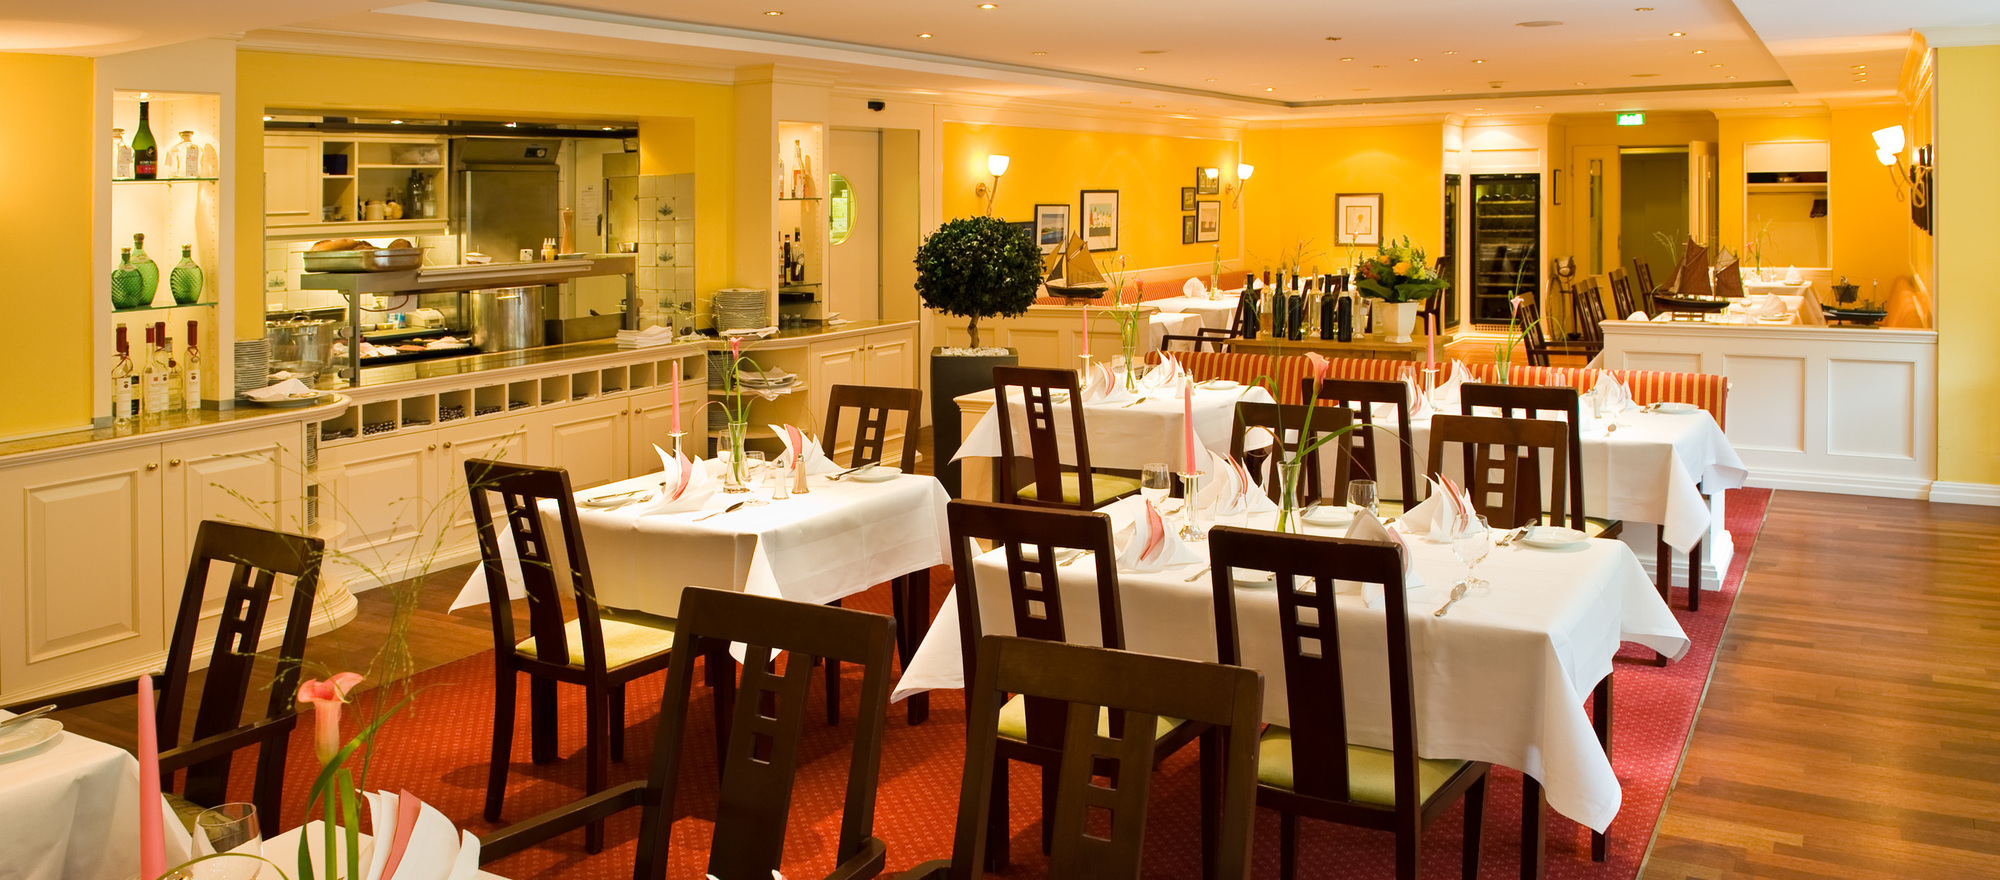 The Fischers Fritz restaurant in the 4-star hotel Ringhotel Birke in Kiel enjoys an excellent reputation for traditional